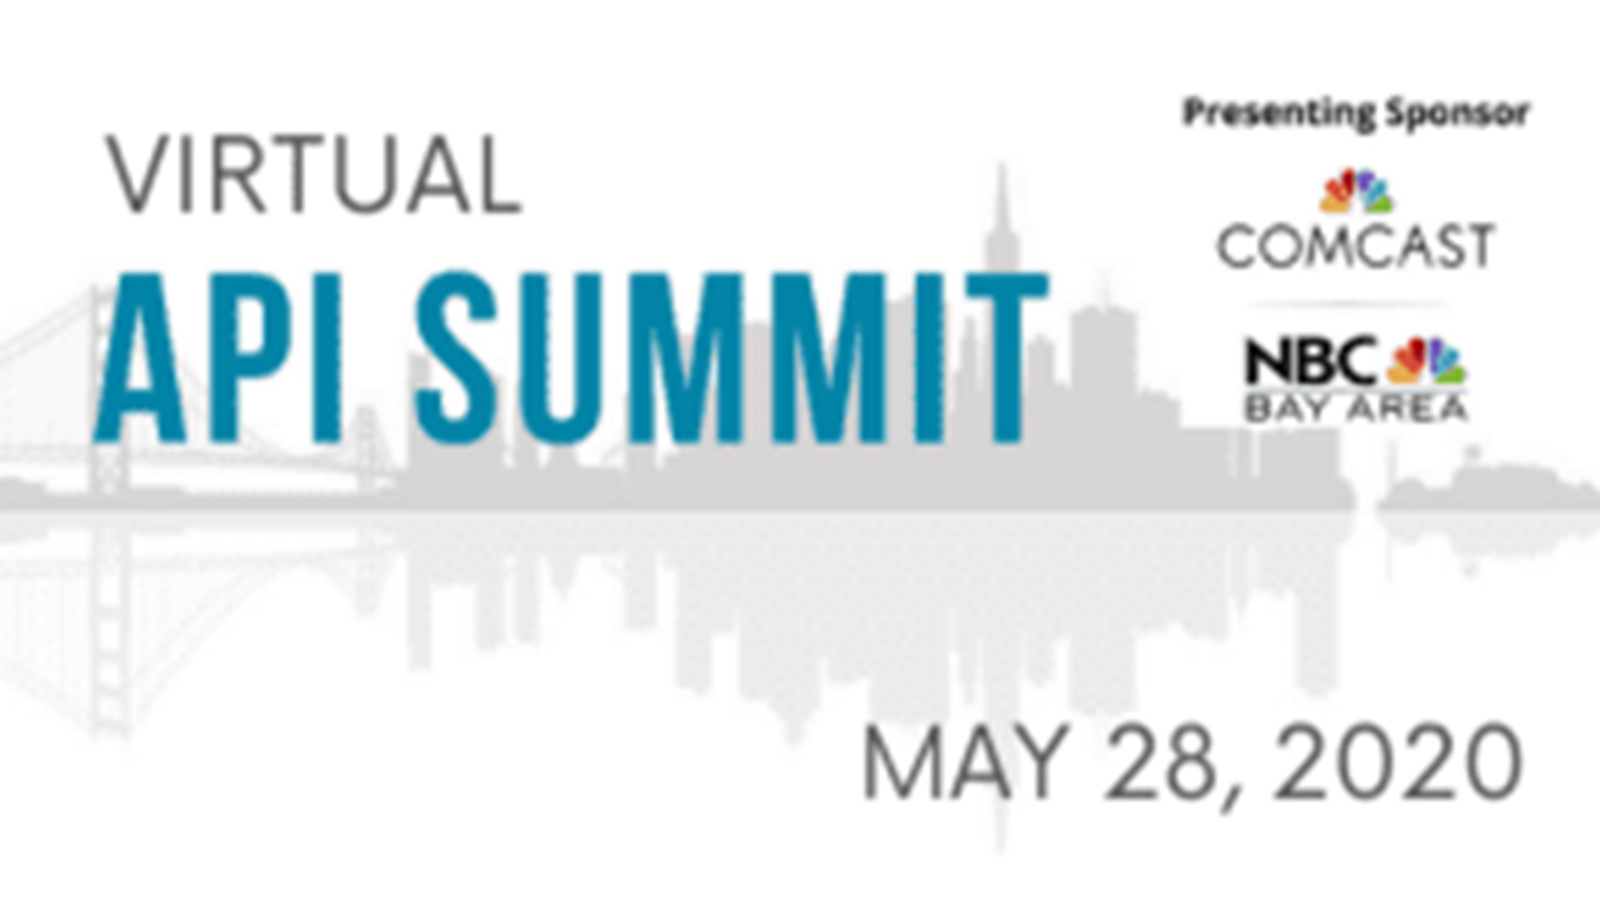 API Summit 2020 with the Comcast logo.